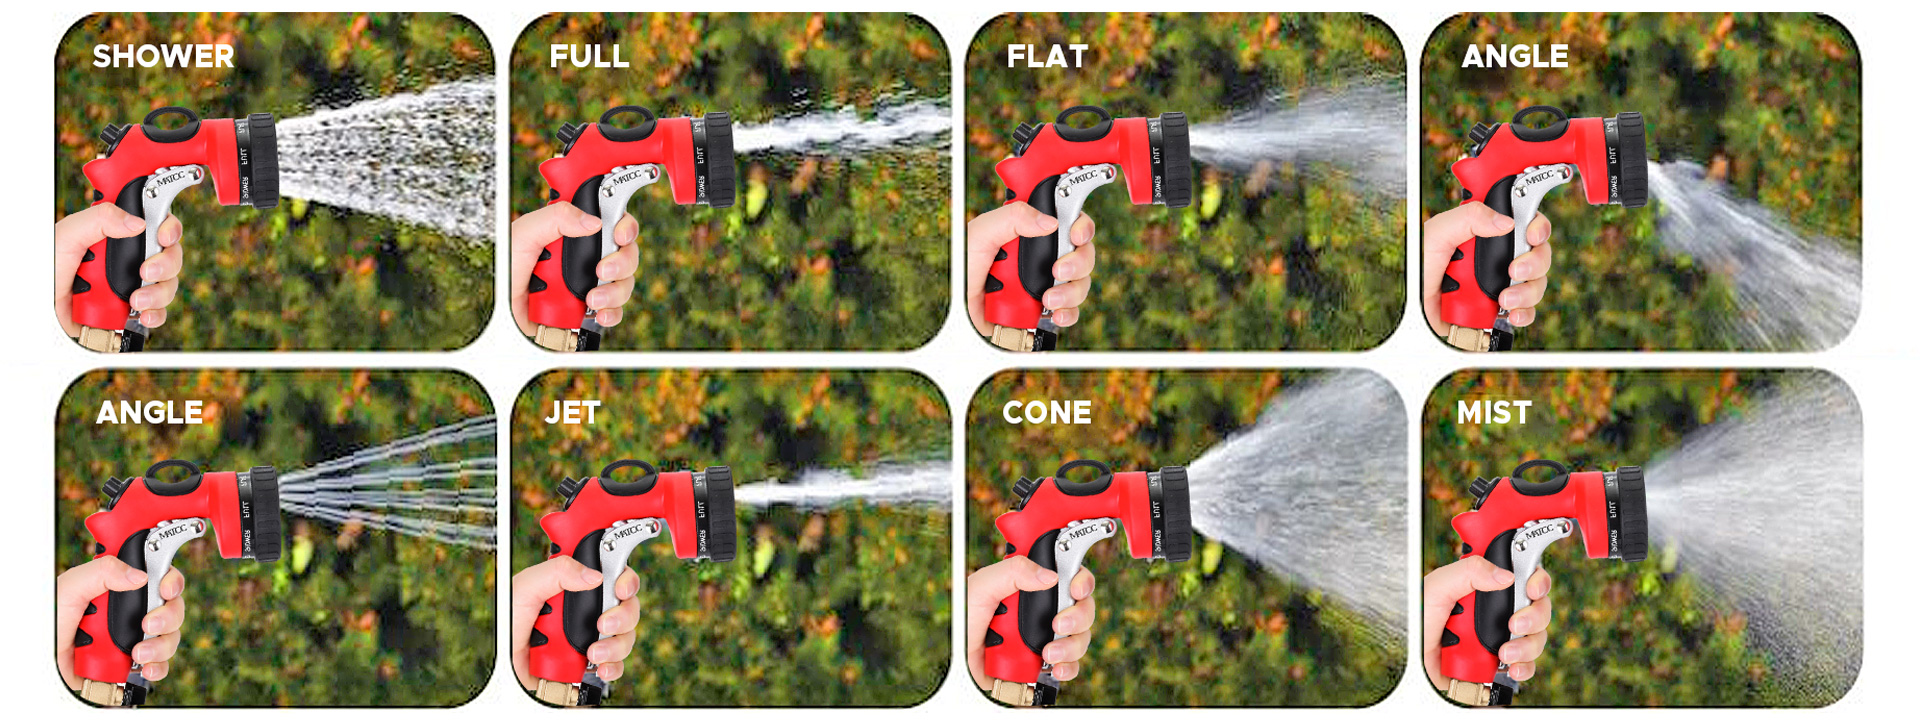 8 Patterns Spray Nozzles